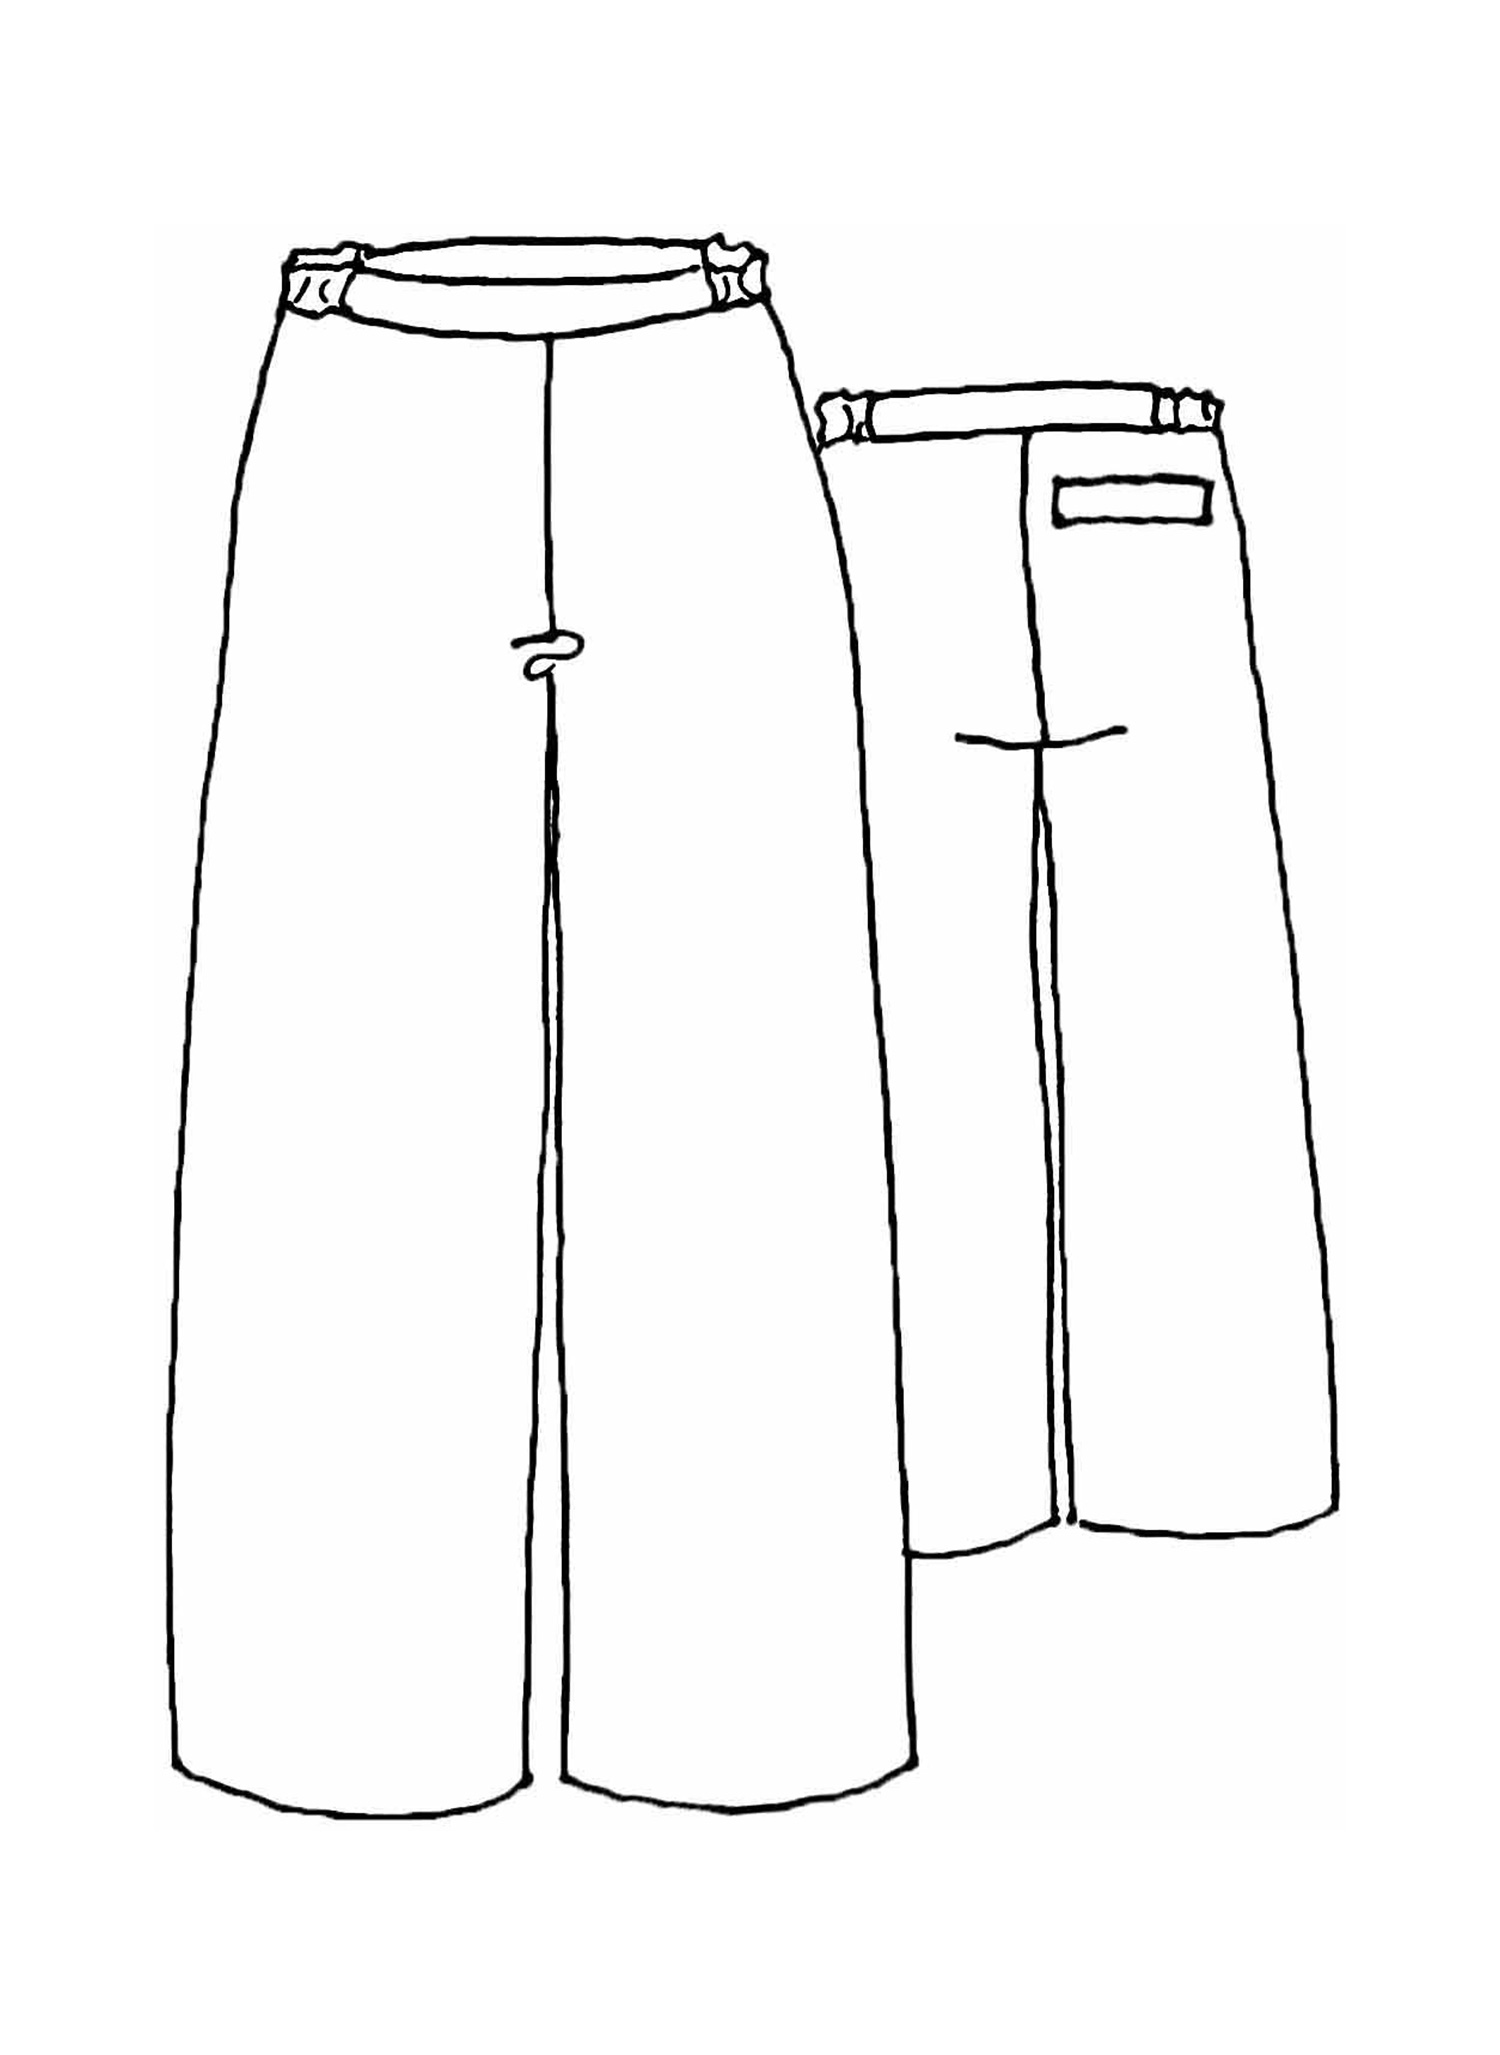 Dock Pant sketch image